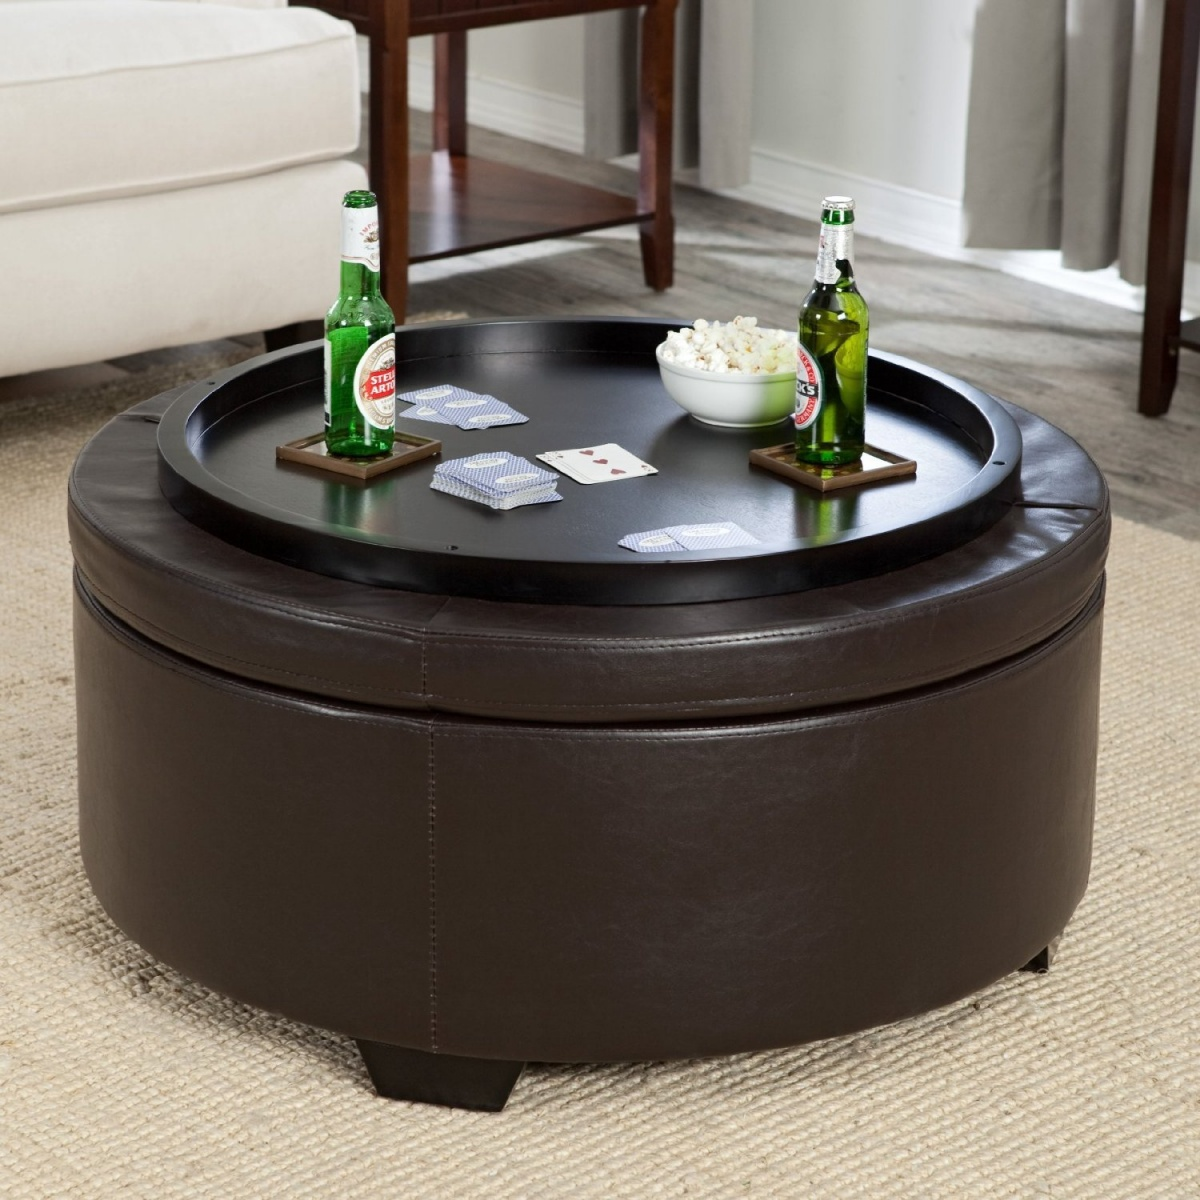 Round Coffee Table Ottoman As Your Best Round Table Round Coffee Table Ottomans Jcpenney Ottoman (View 6 of 10)